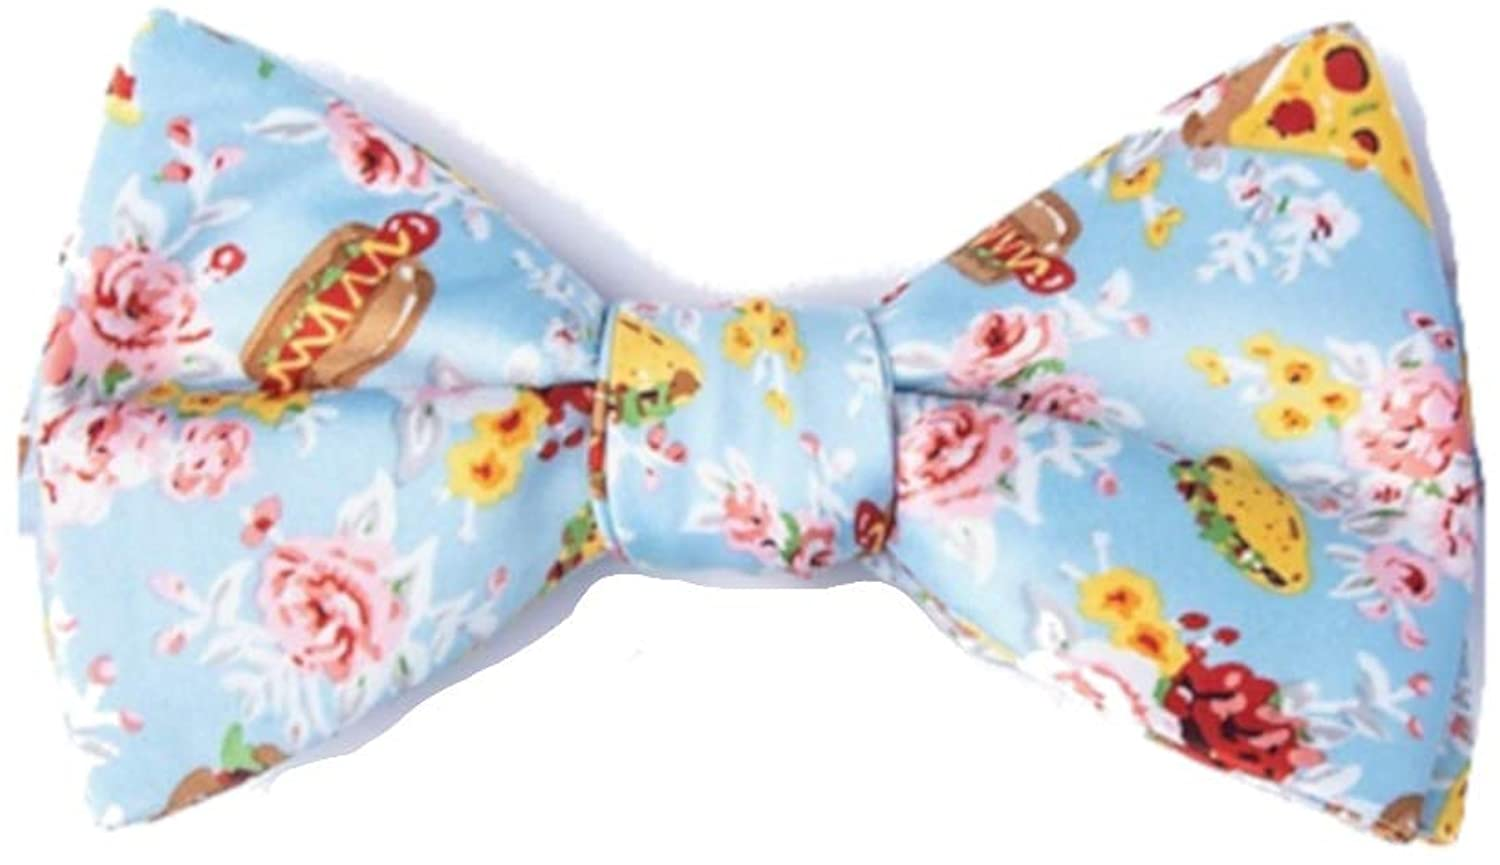 Men's Light Blue Fast Food Floral Tacos Pizza Hamburgers Hots Dogs Self Tie Bow Tie